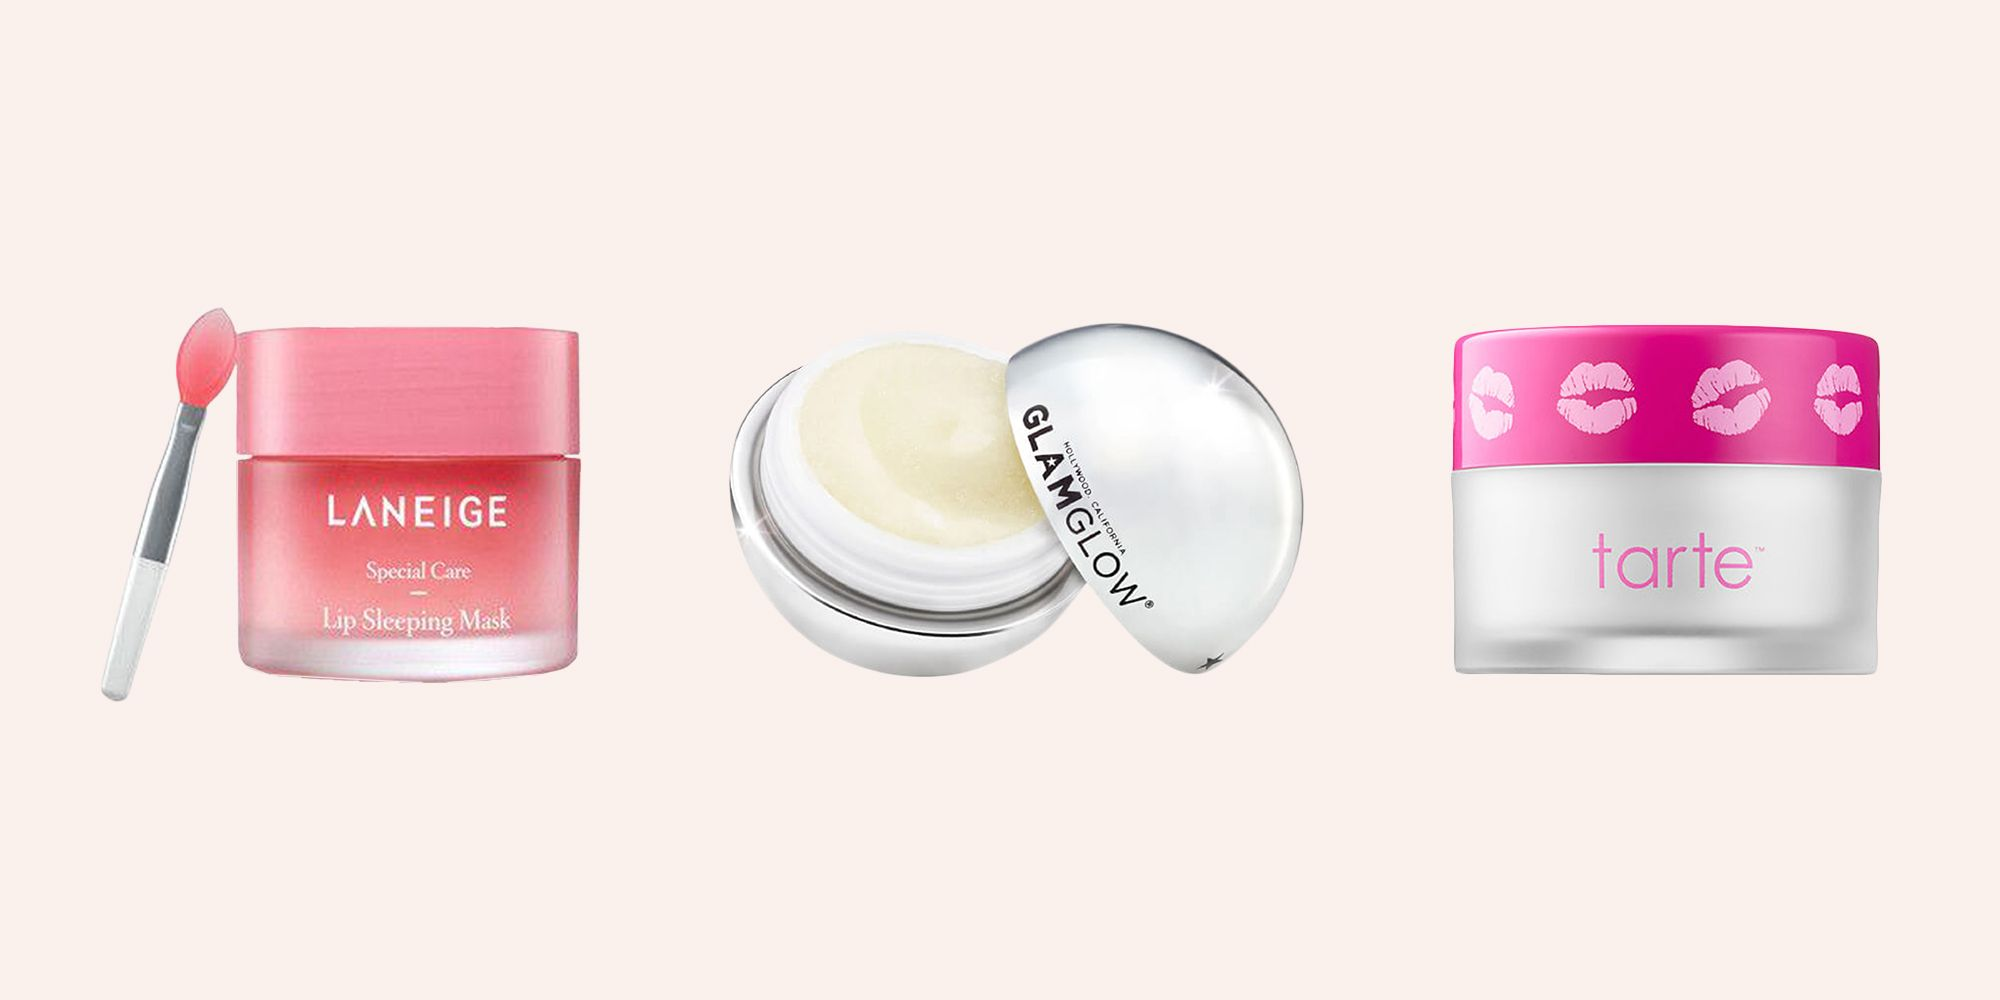 7 Best Lip Scrubs And Exfoliating Treatments How To Exfoliate For Soft Lips